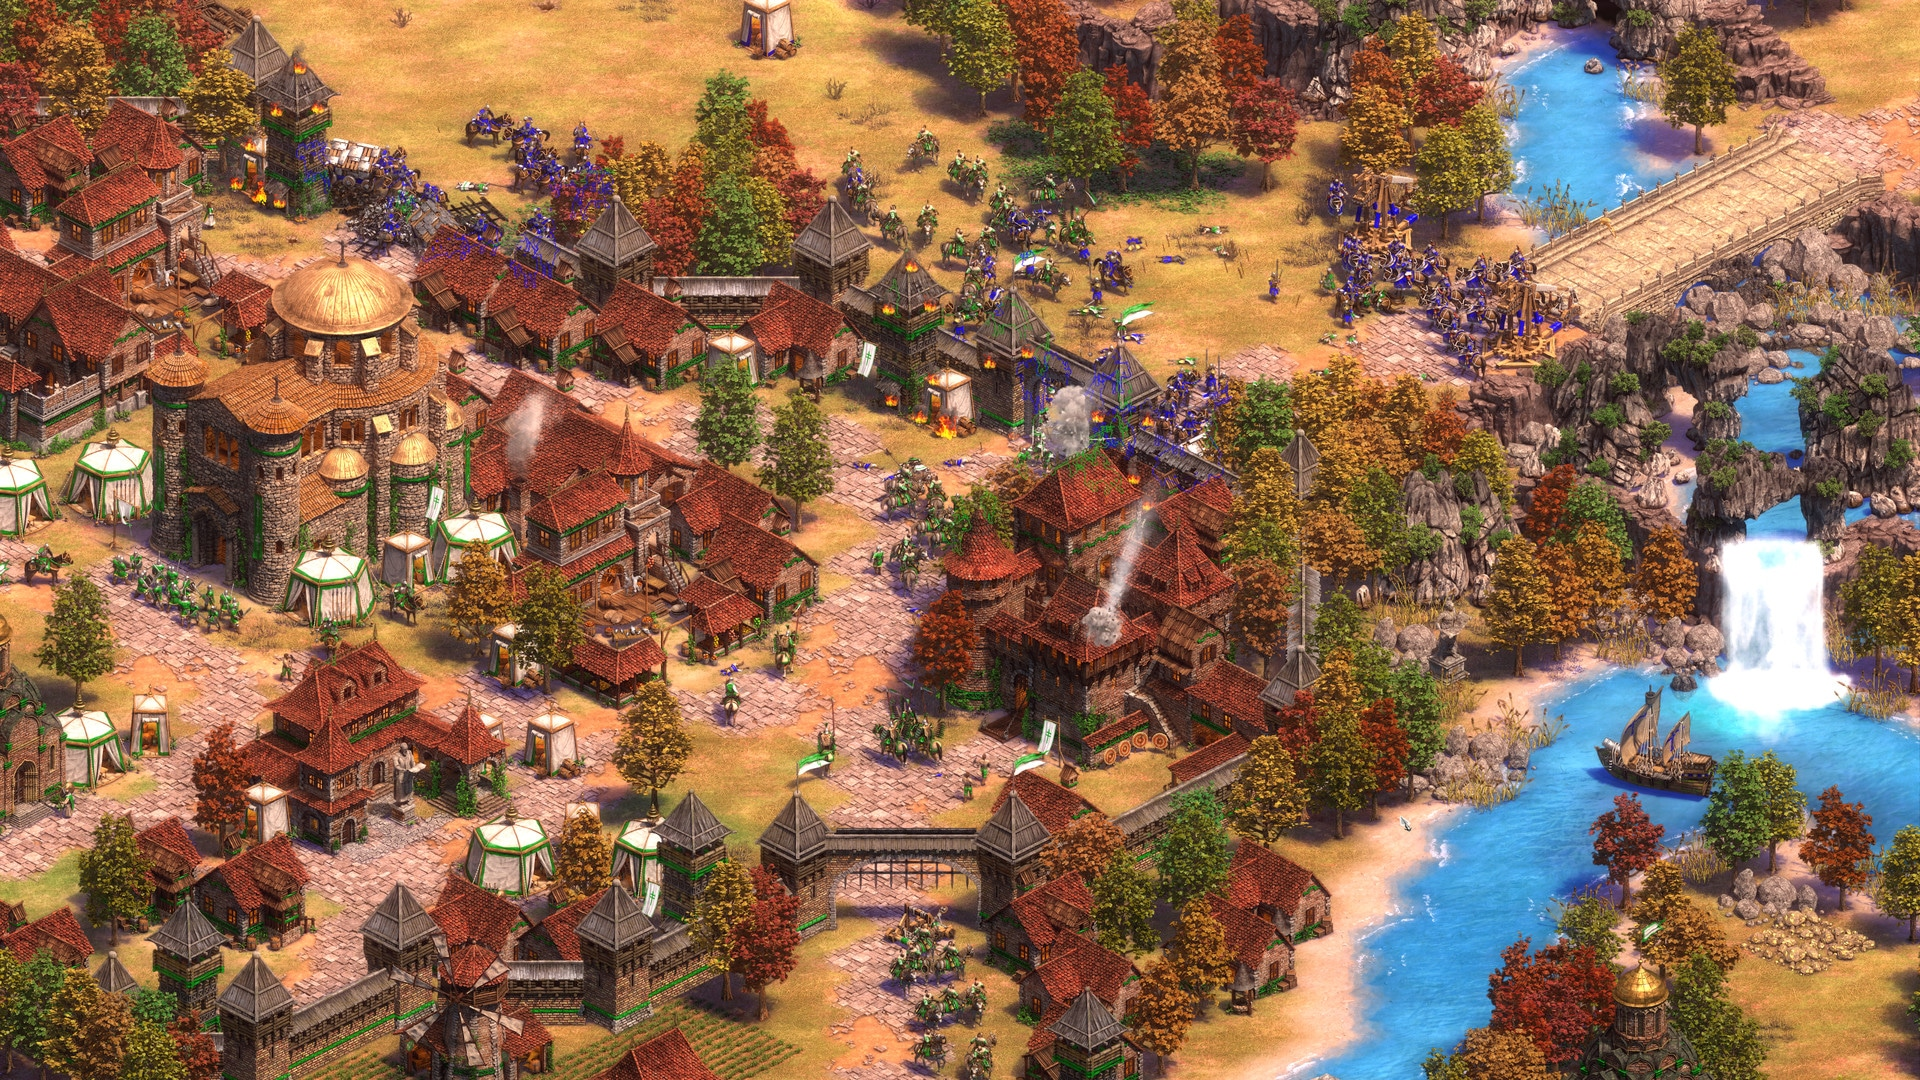 VIRTUOS-SPARX* PRODUCED ABUNDANT FX AND ART ASSETS FOR AGE OF EMPIRES II: DEFINITIVE EDITION